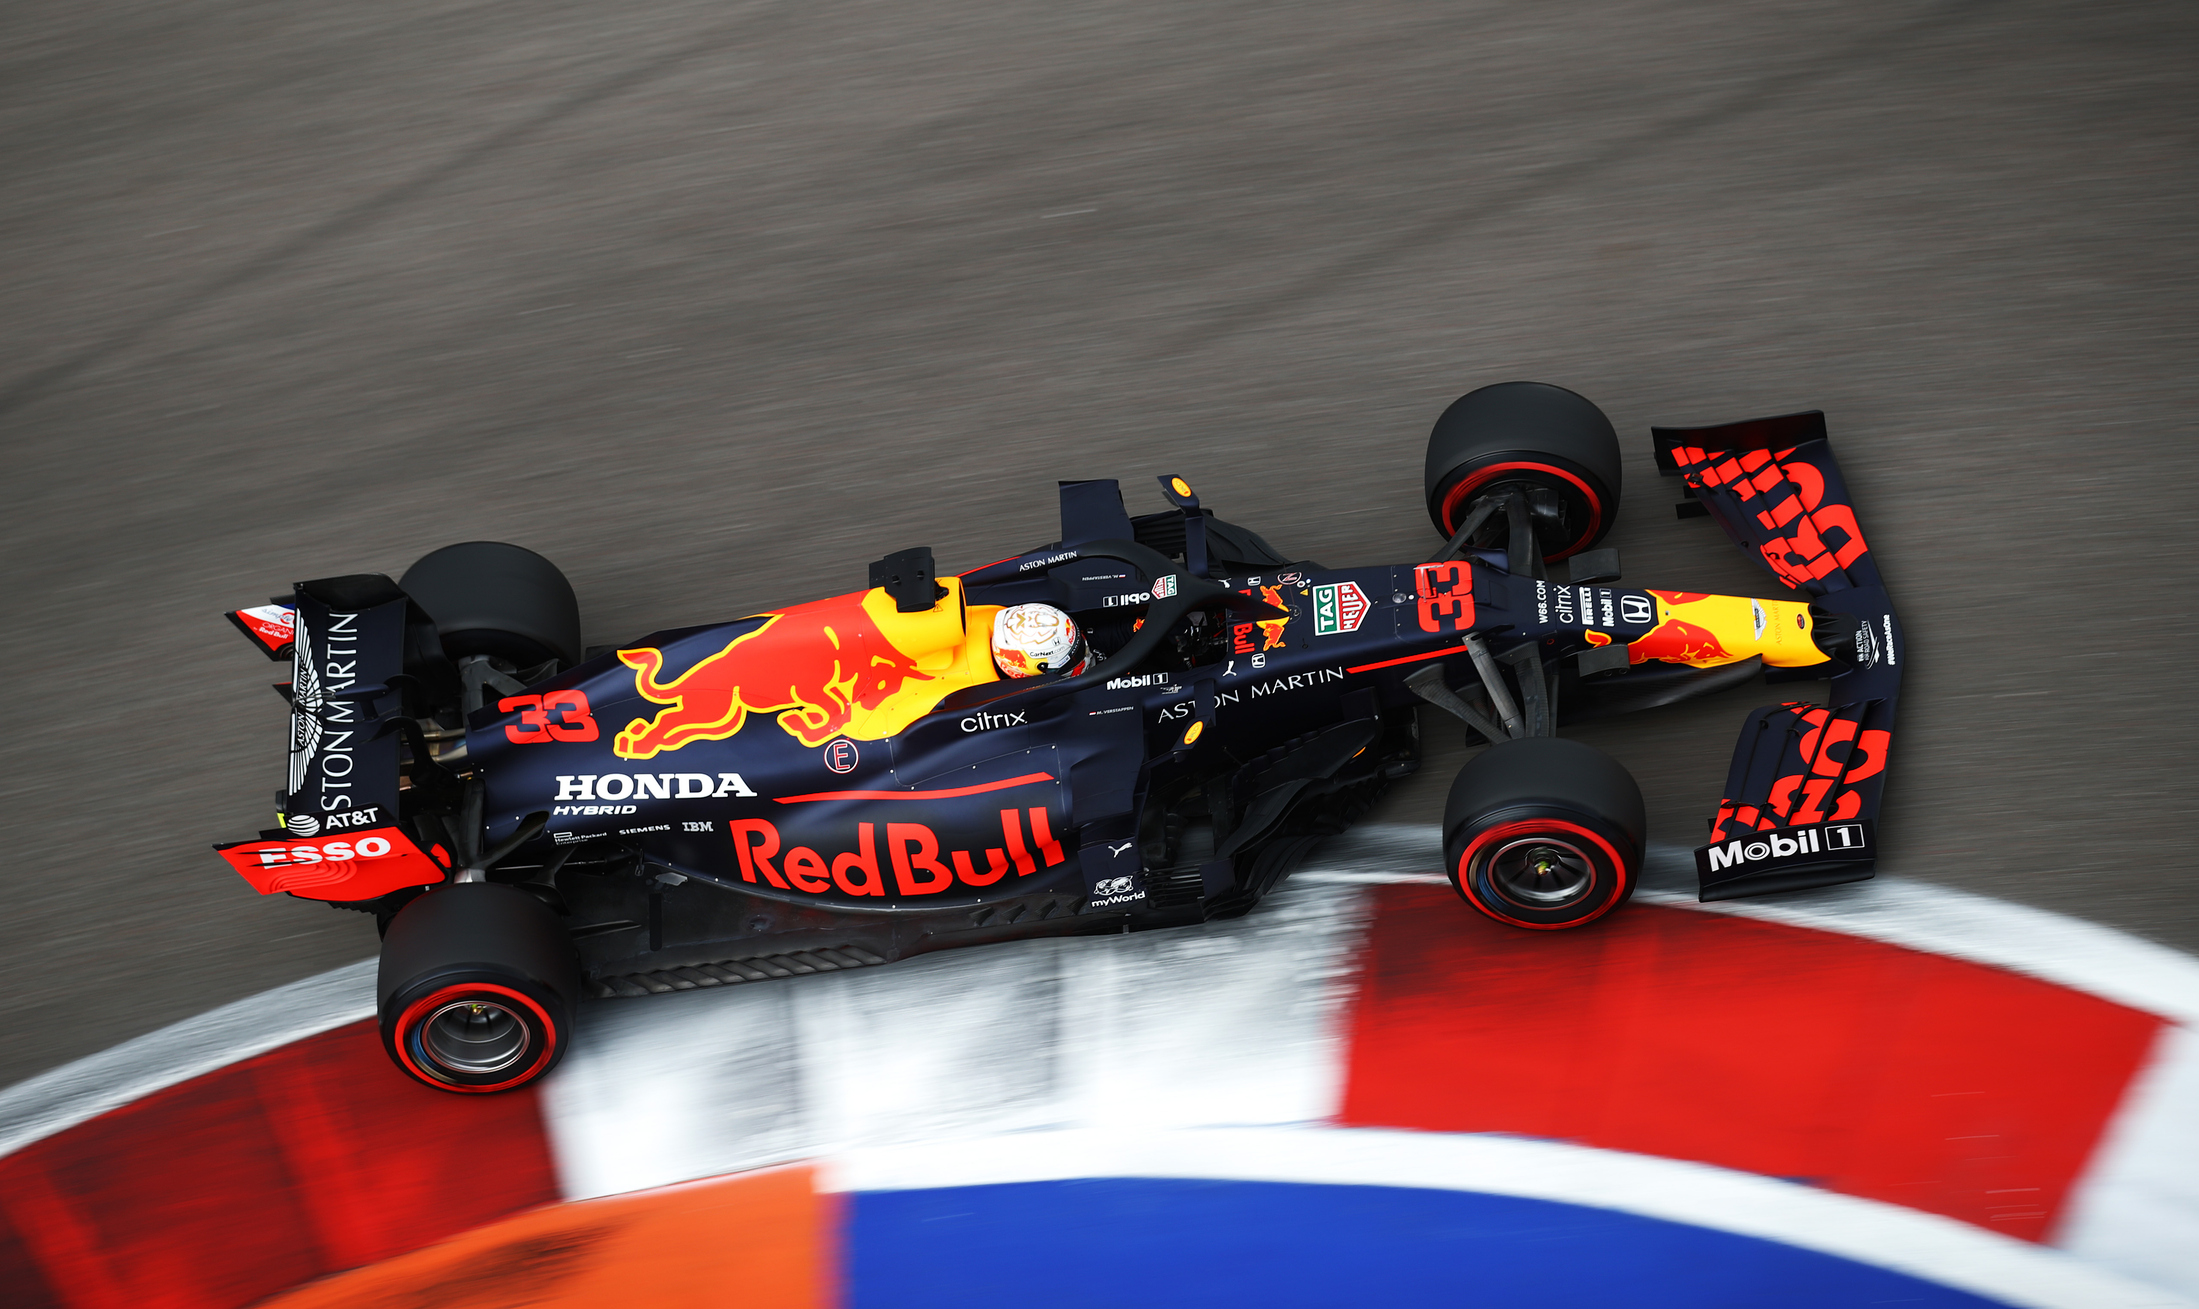 Russian Gp Qualifying Facts And Stats Verstappen Ends A Mercedes Run At Sochi Formula 1